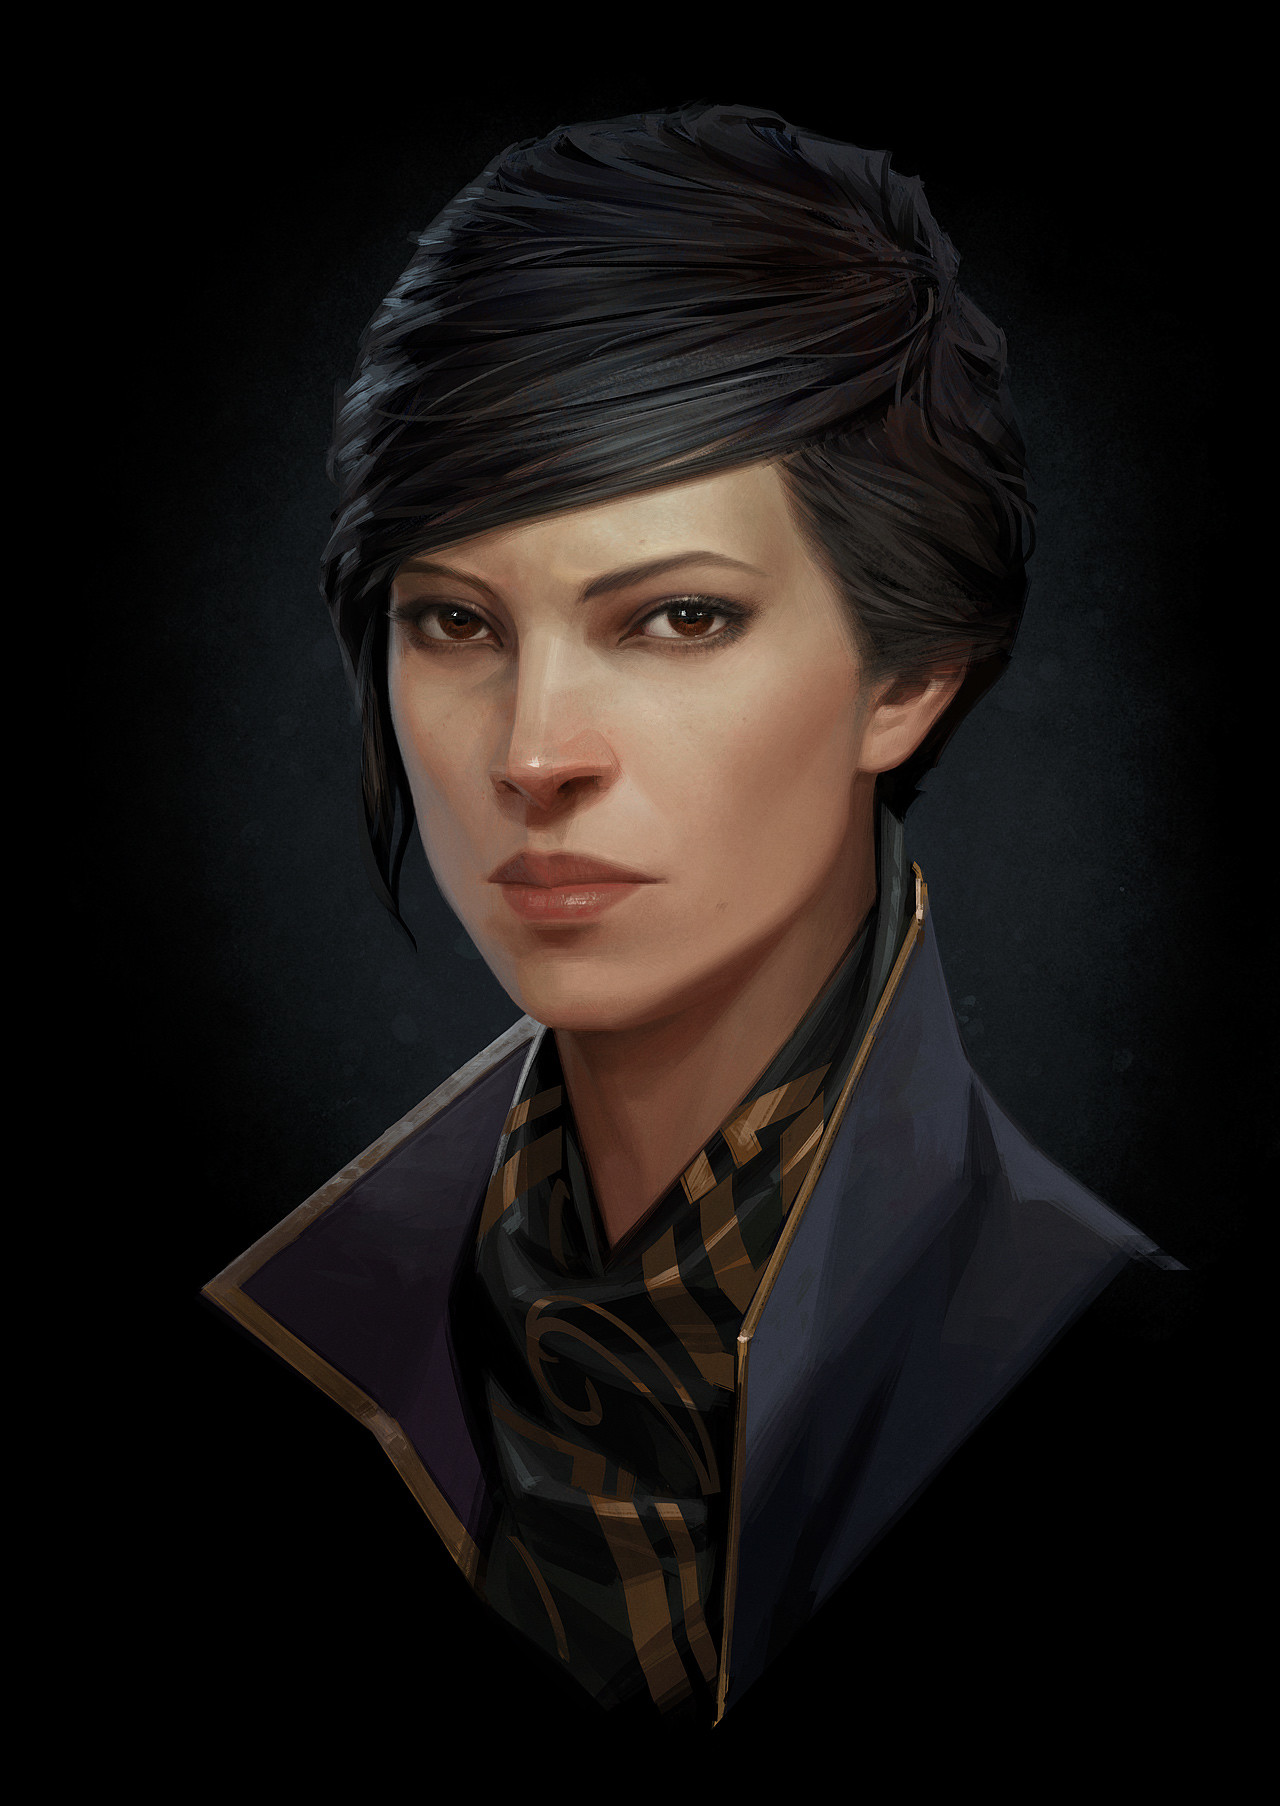 Sergey Kolesov Digital Painting Concept Art dishonored 2 Emily Portrait